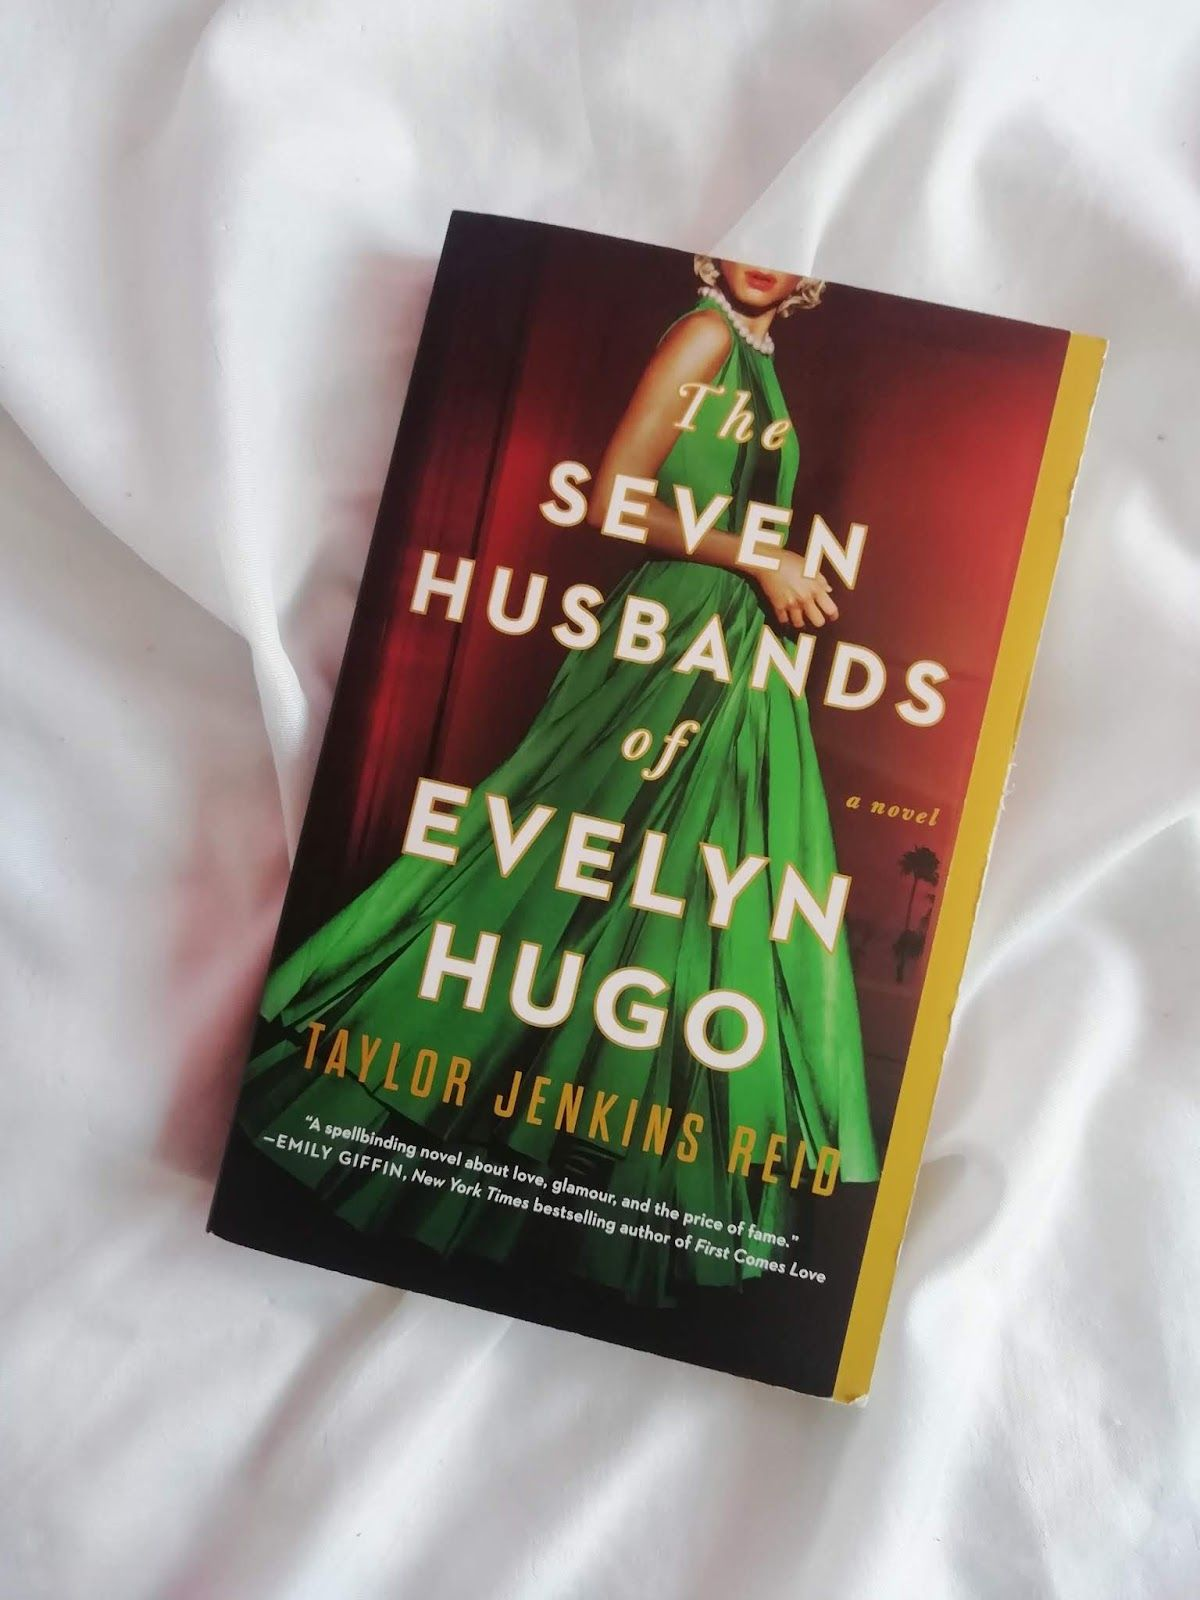 The 7 Husbands of Evelyn Hugo by Taylor Jenkins Re